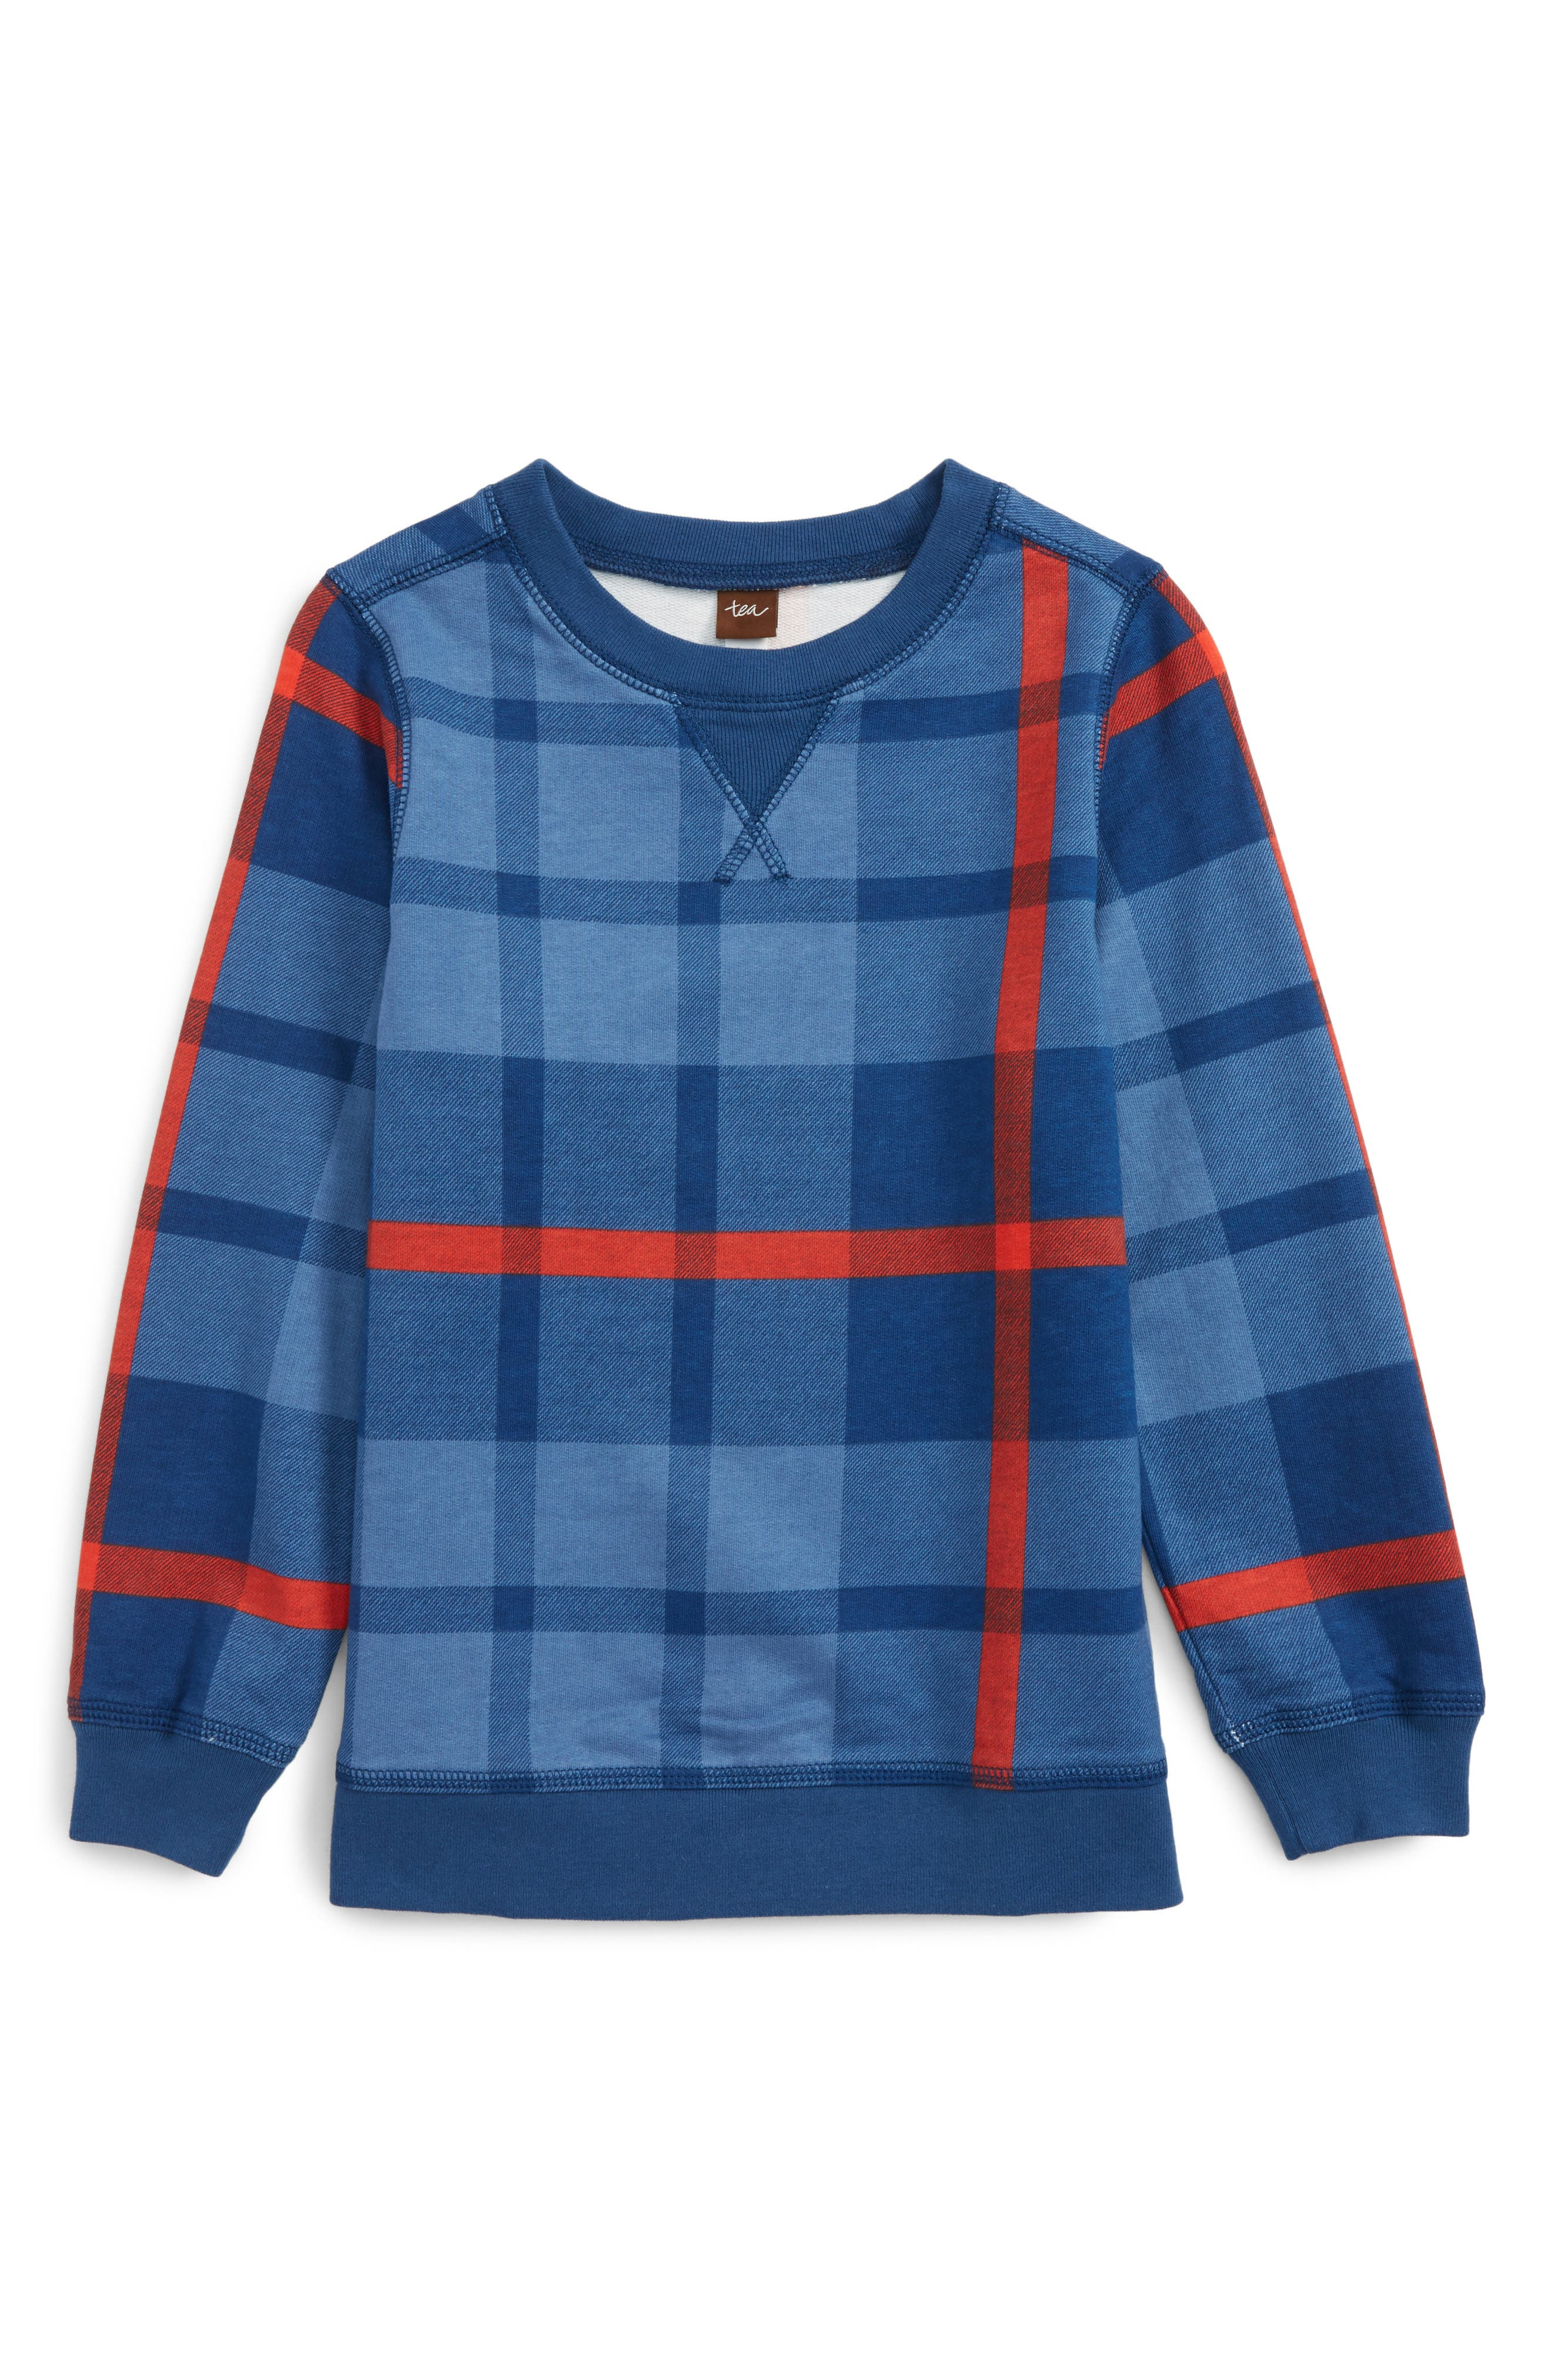 Alternate Image 1 Selected - Tea Collection Archibald Plaid Pullover (Toddler Boys & Little Boys)